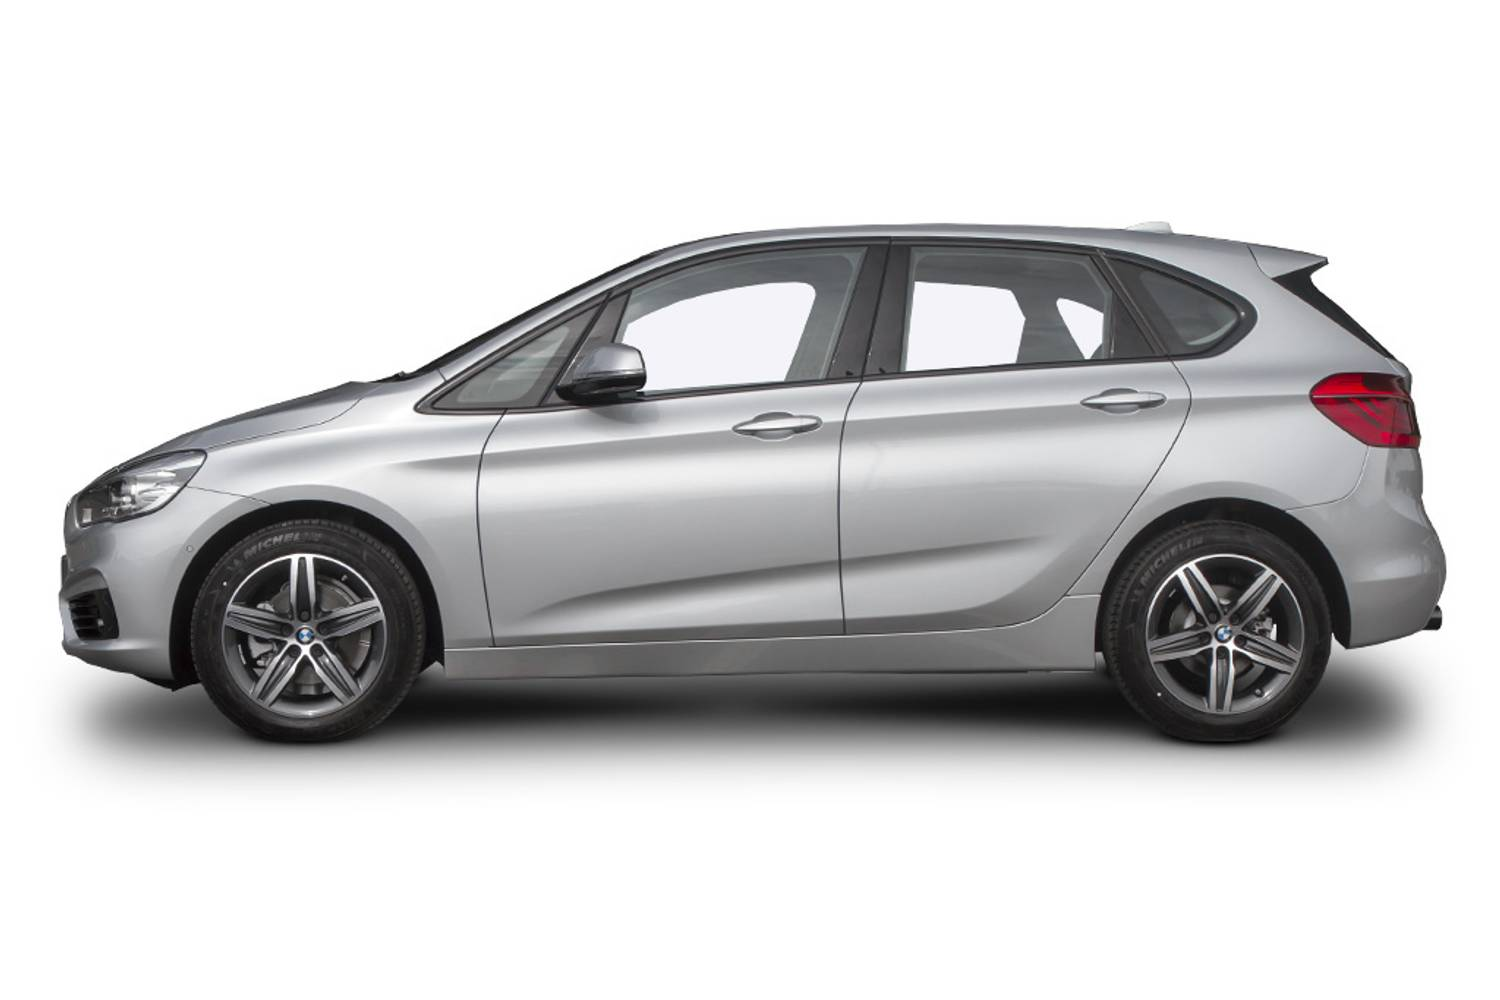 new bmw 2 series diesel active tourer 216d luxury 5 door. Black Bedroom Furniture Sets. Home Design Ideas